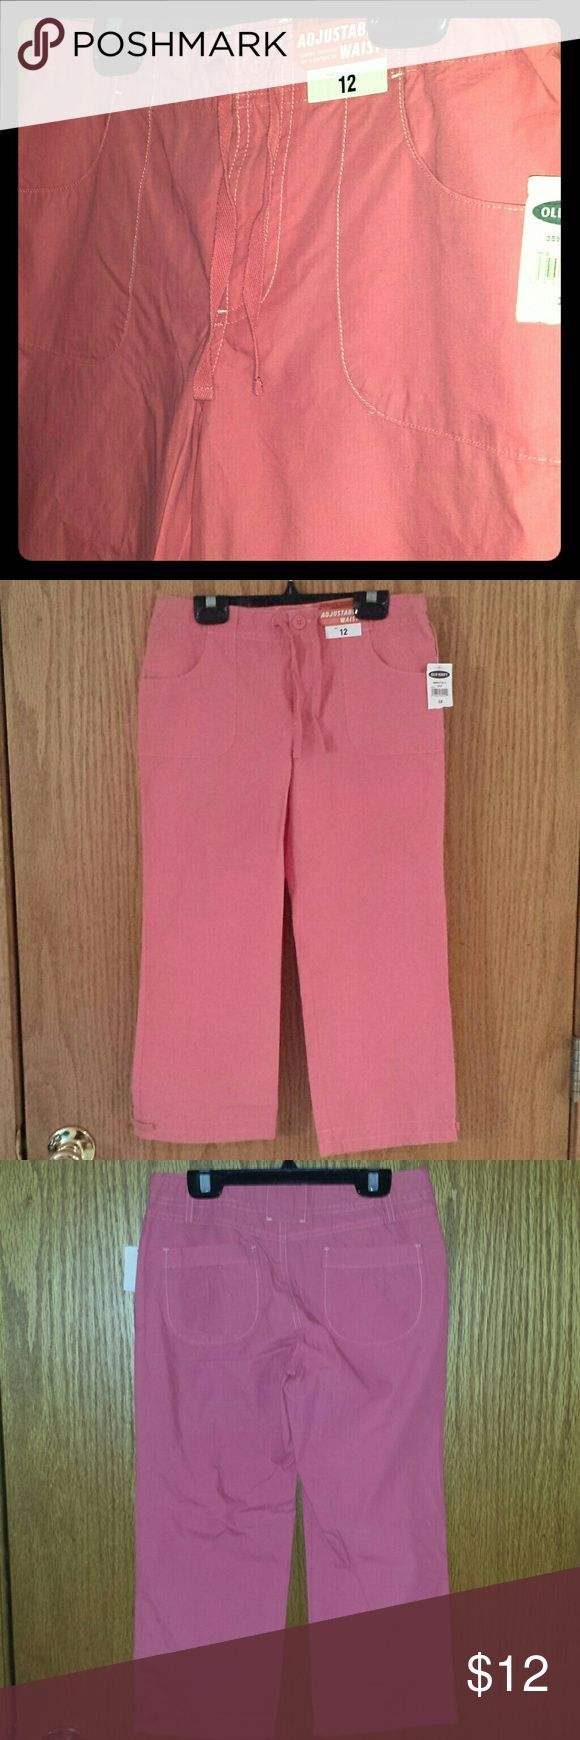 Old Navy girl's coral capris size 12 Capris with adjustable waist size 12. No stains or defects from a pet and smoke free home. Old Navy Bottoms Casual